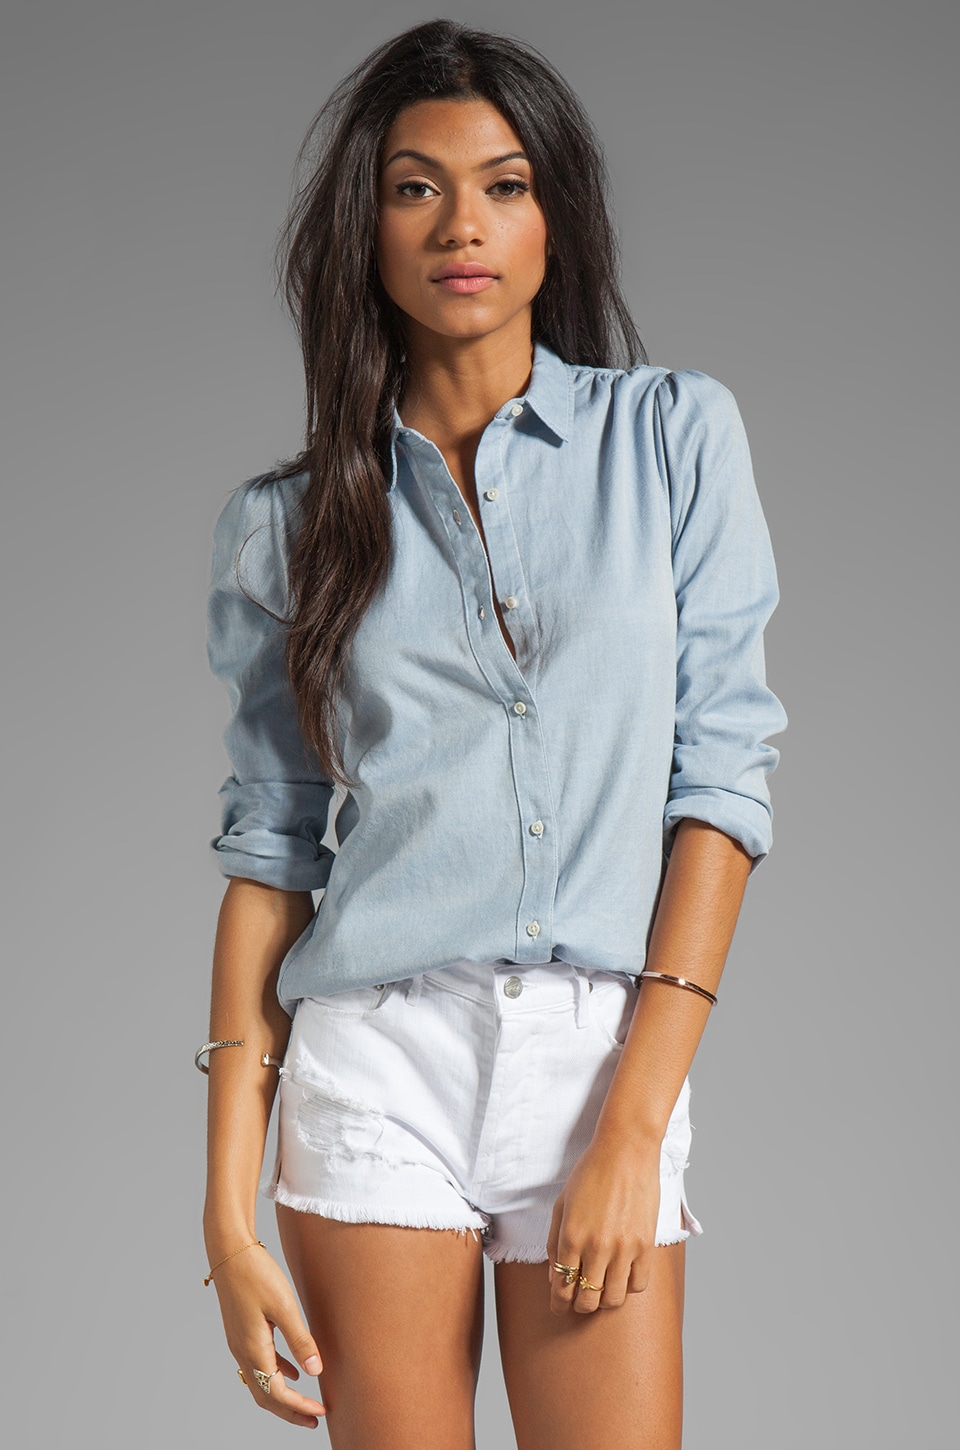 Joe's Jeans Dandy Woven Twill Button Down Shirt in Powder Blue